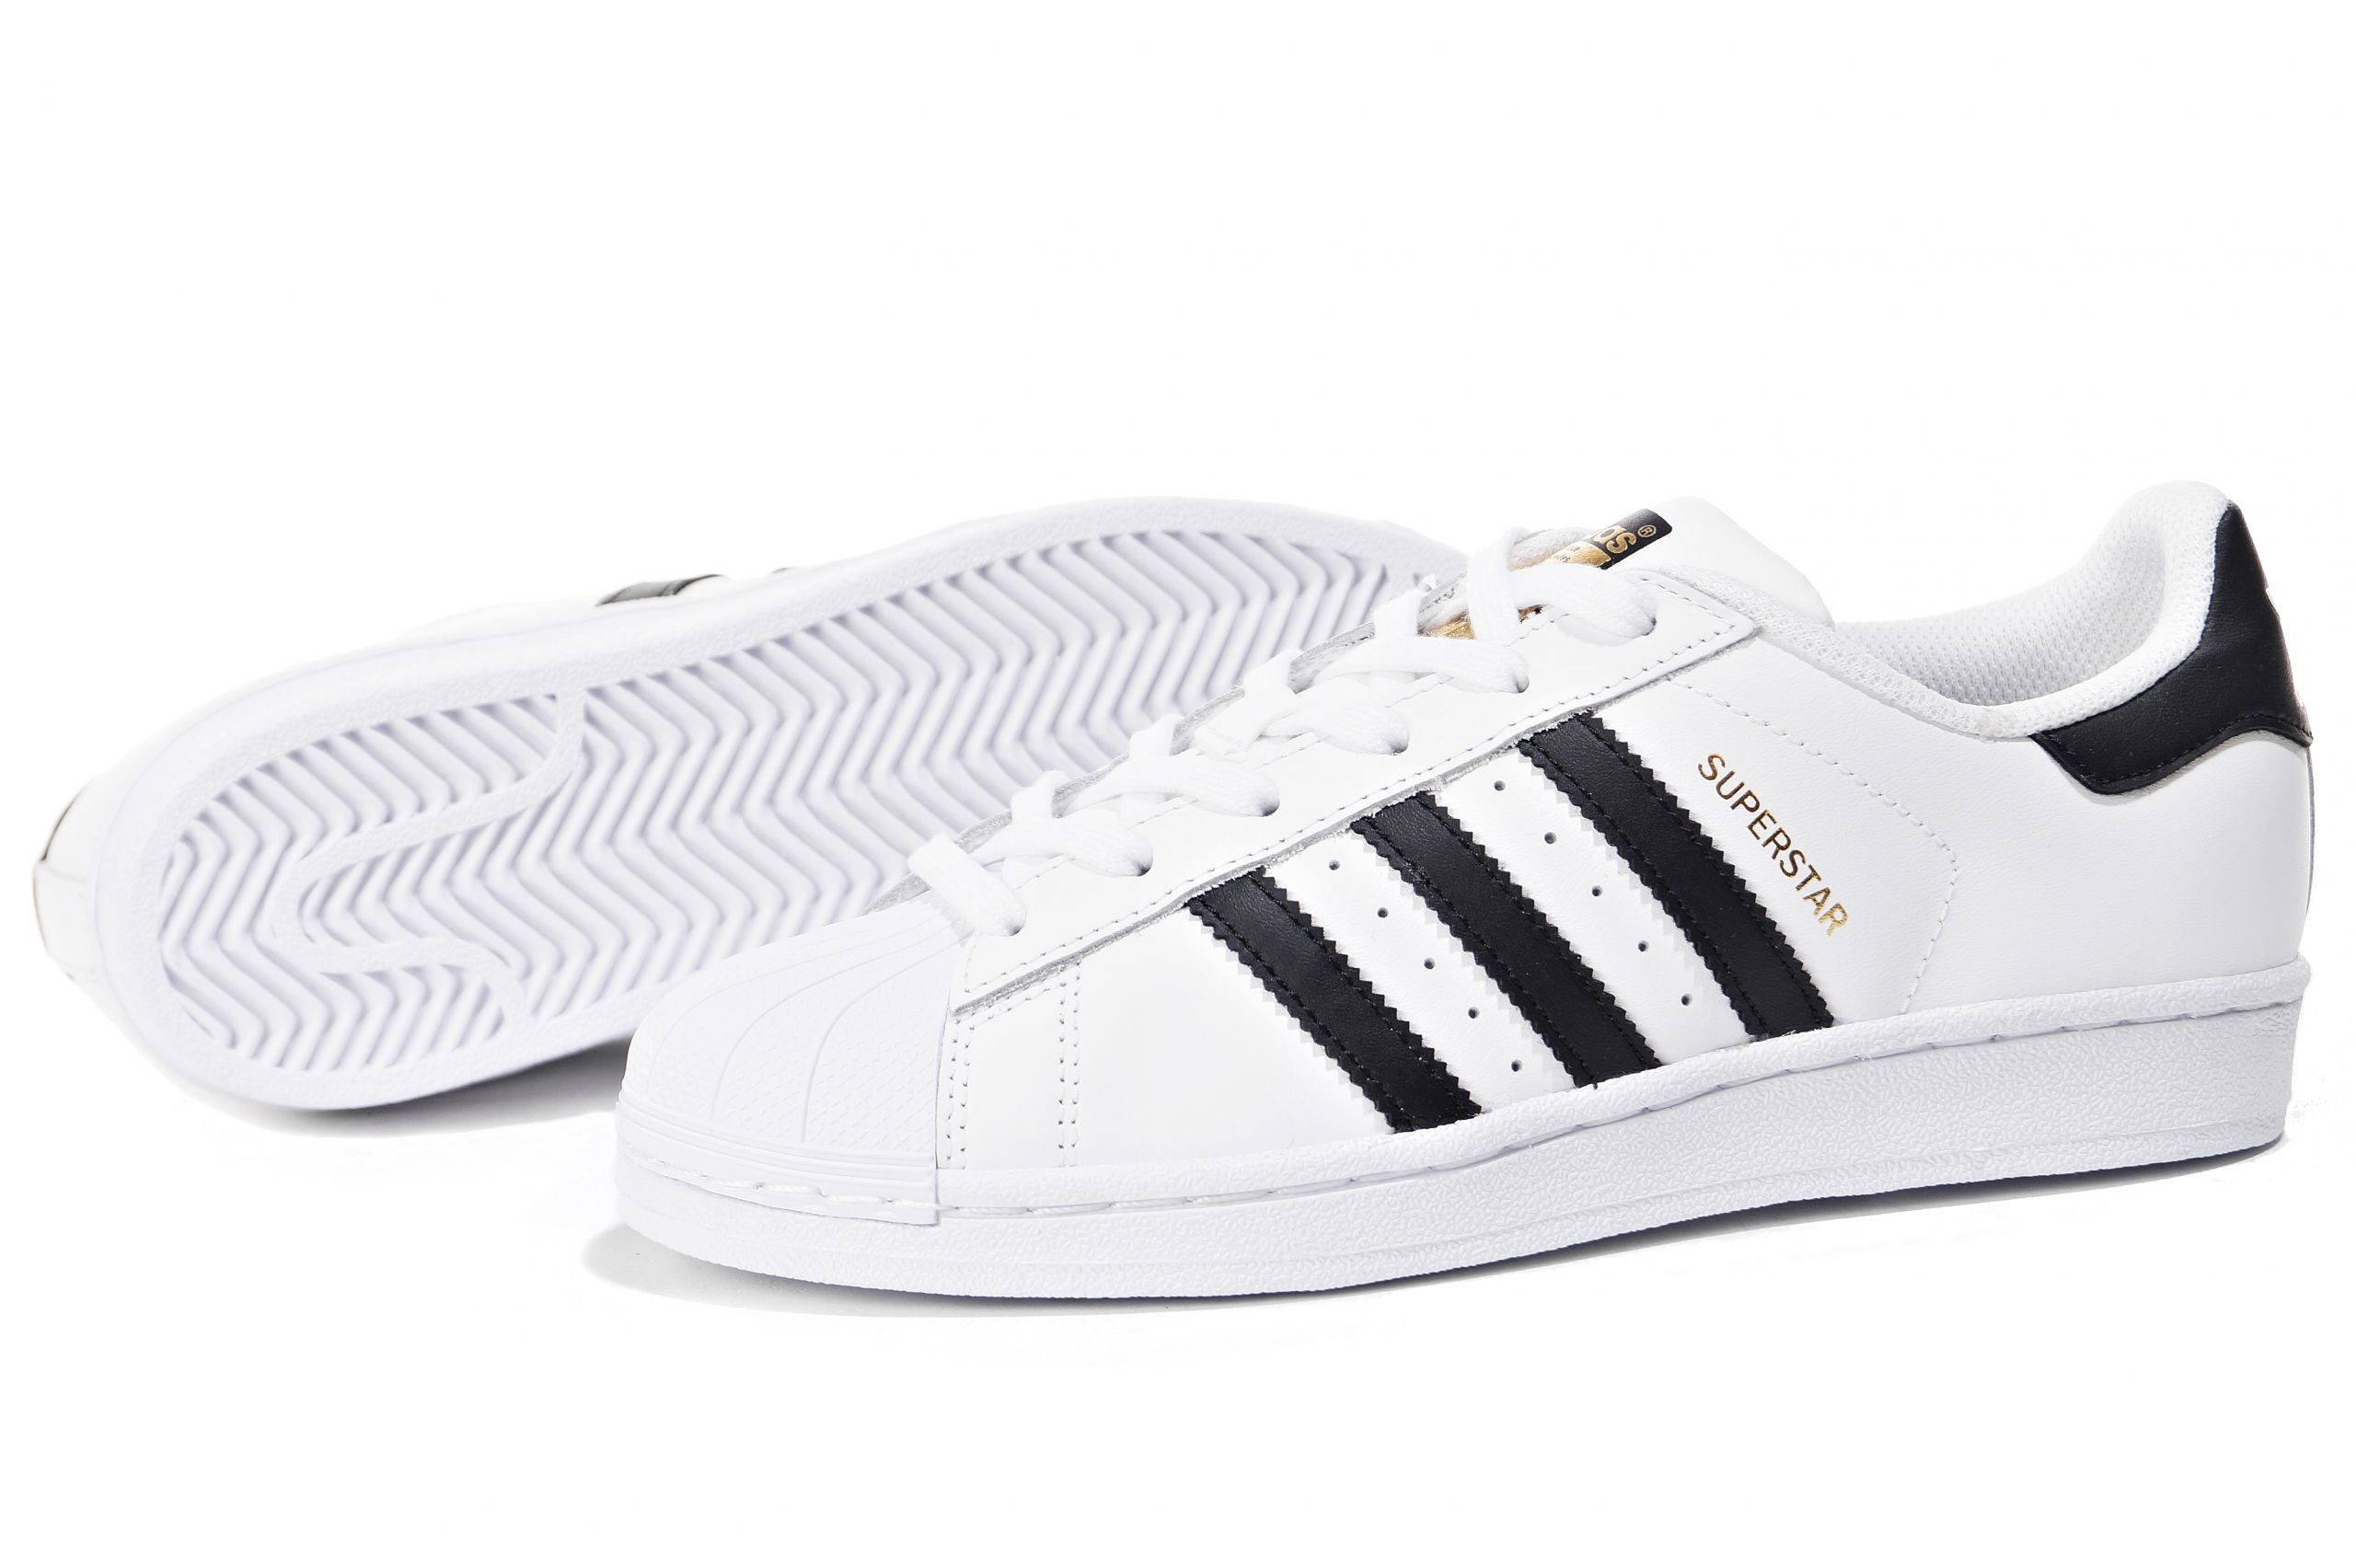 competitive price db5b6 361ac 2188a d31c7  coupon code for buty adidas superstar j c77154 biae r. 38 2 3  79ef4 7fd76